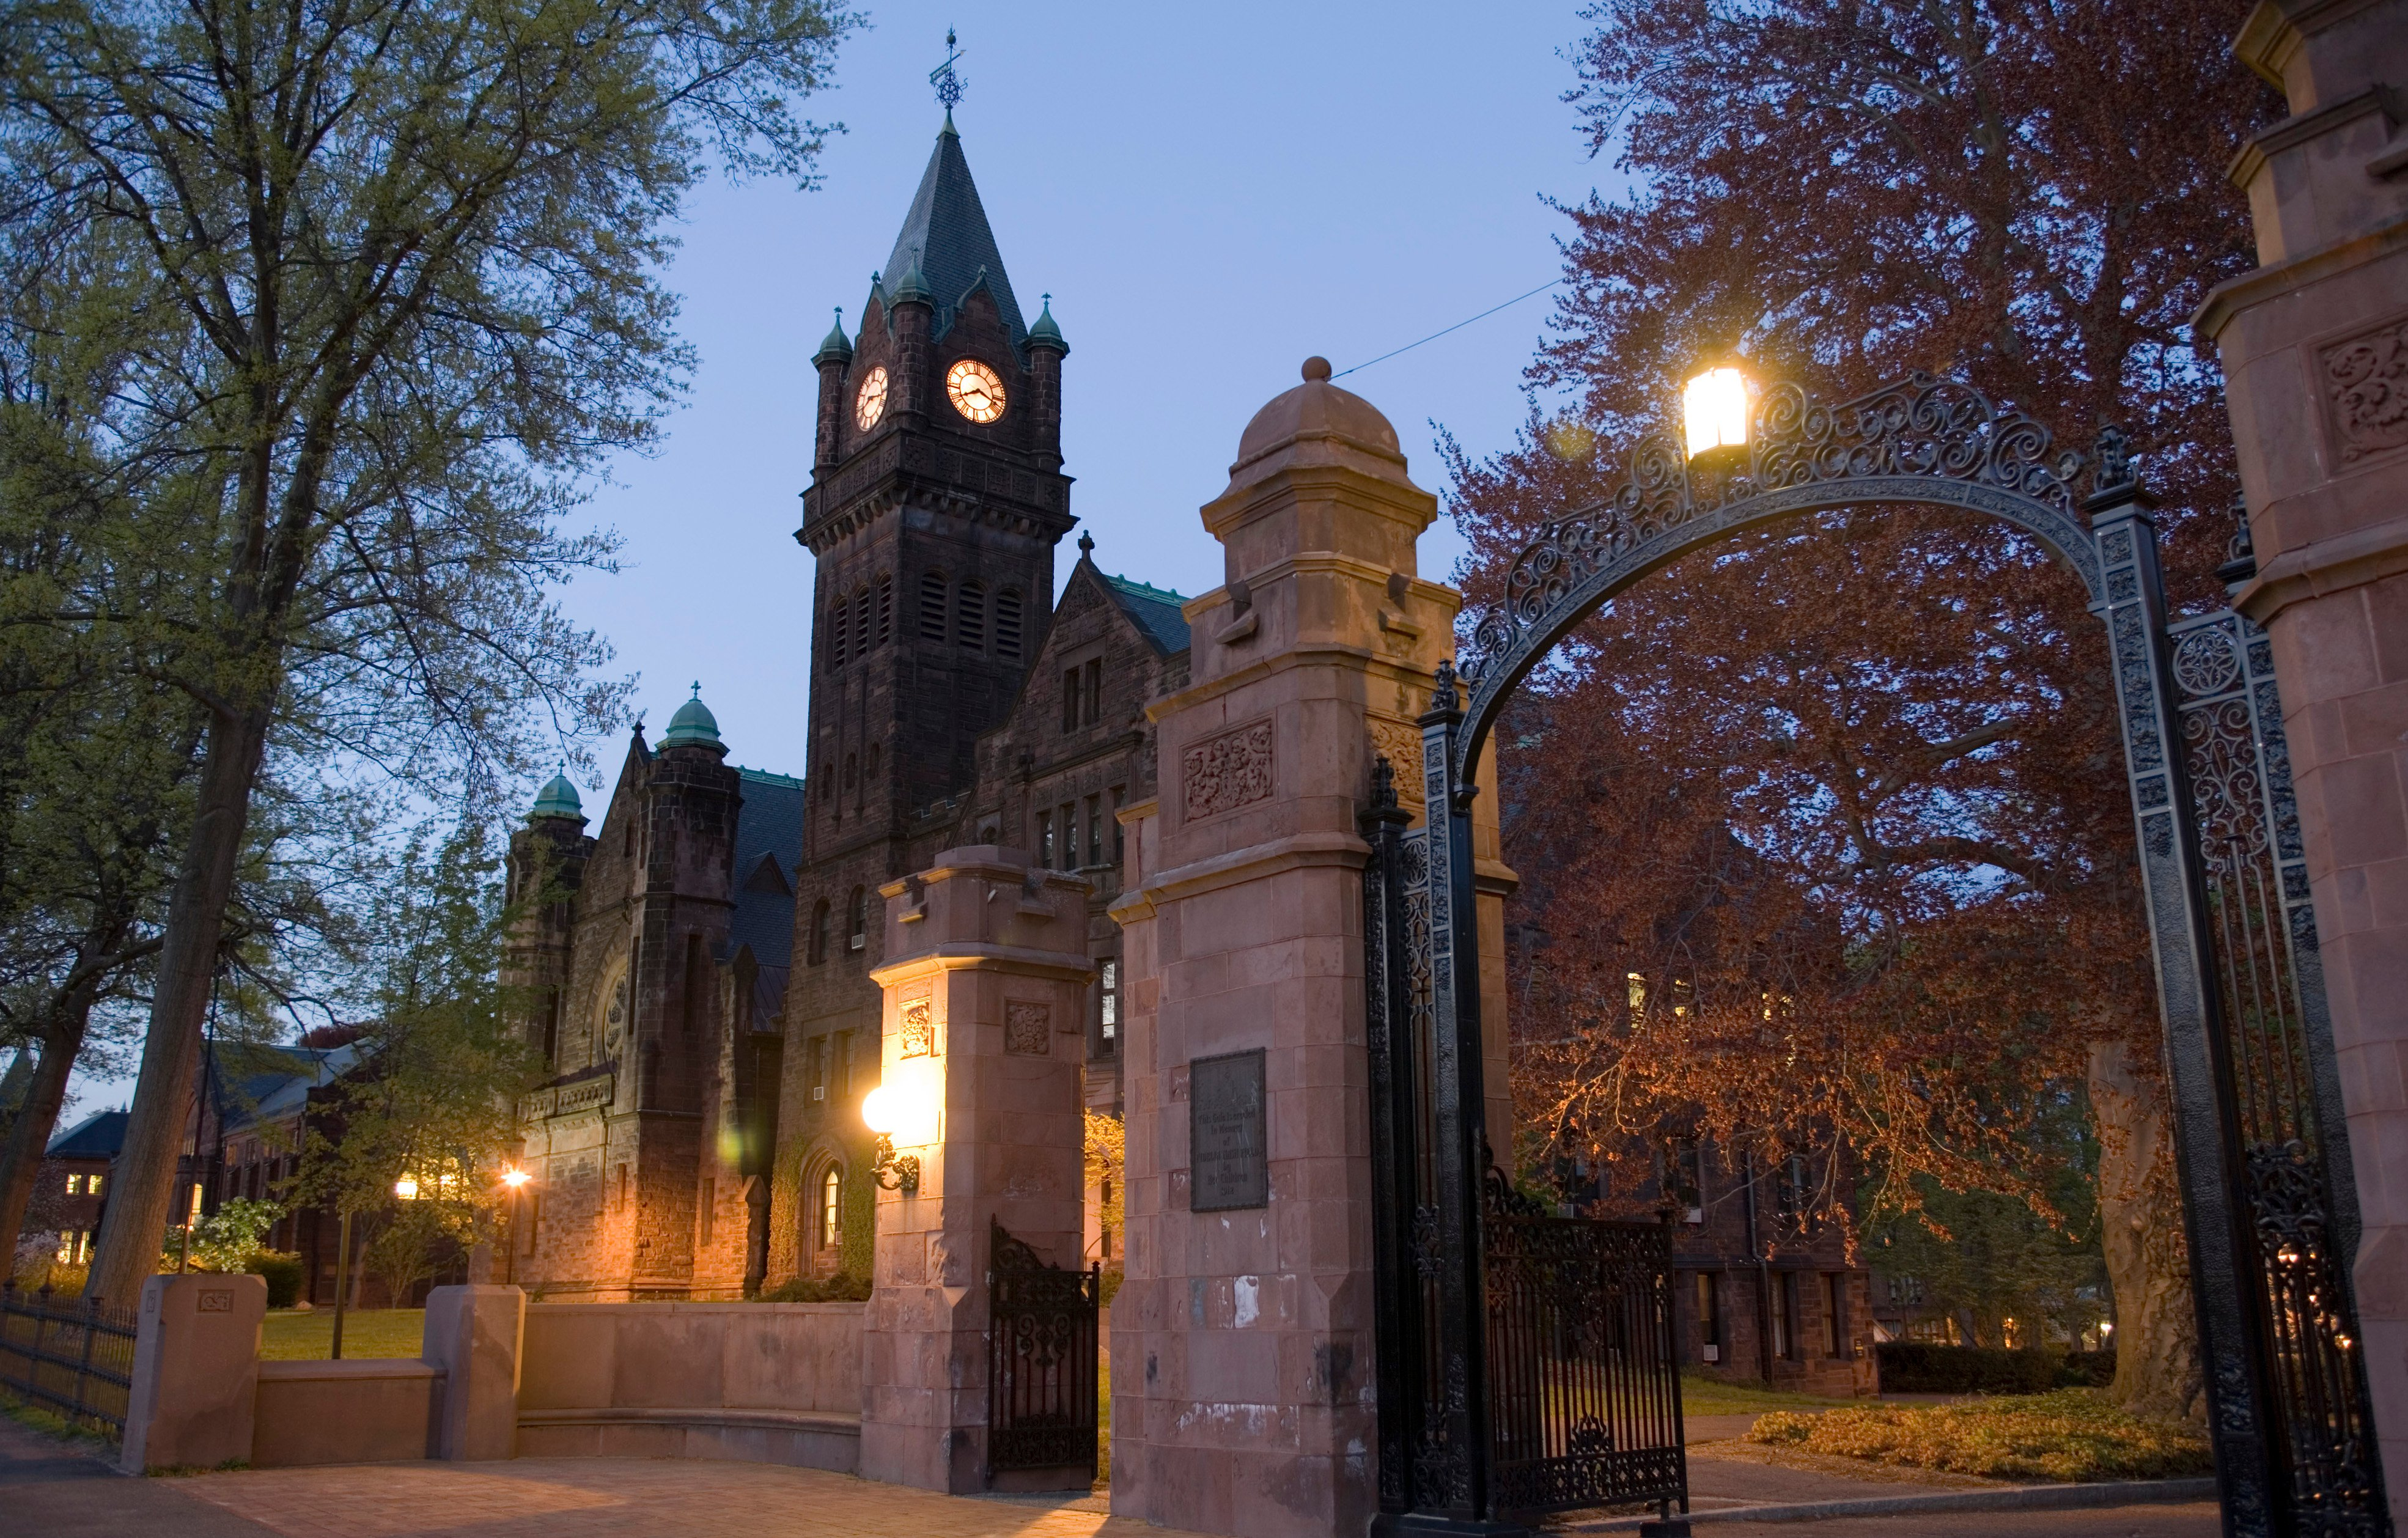 Mary Lyon Hall and the College gates at night